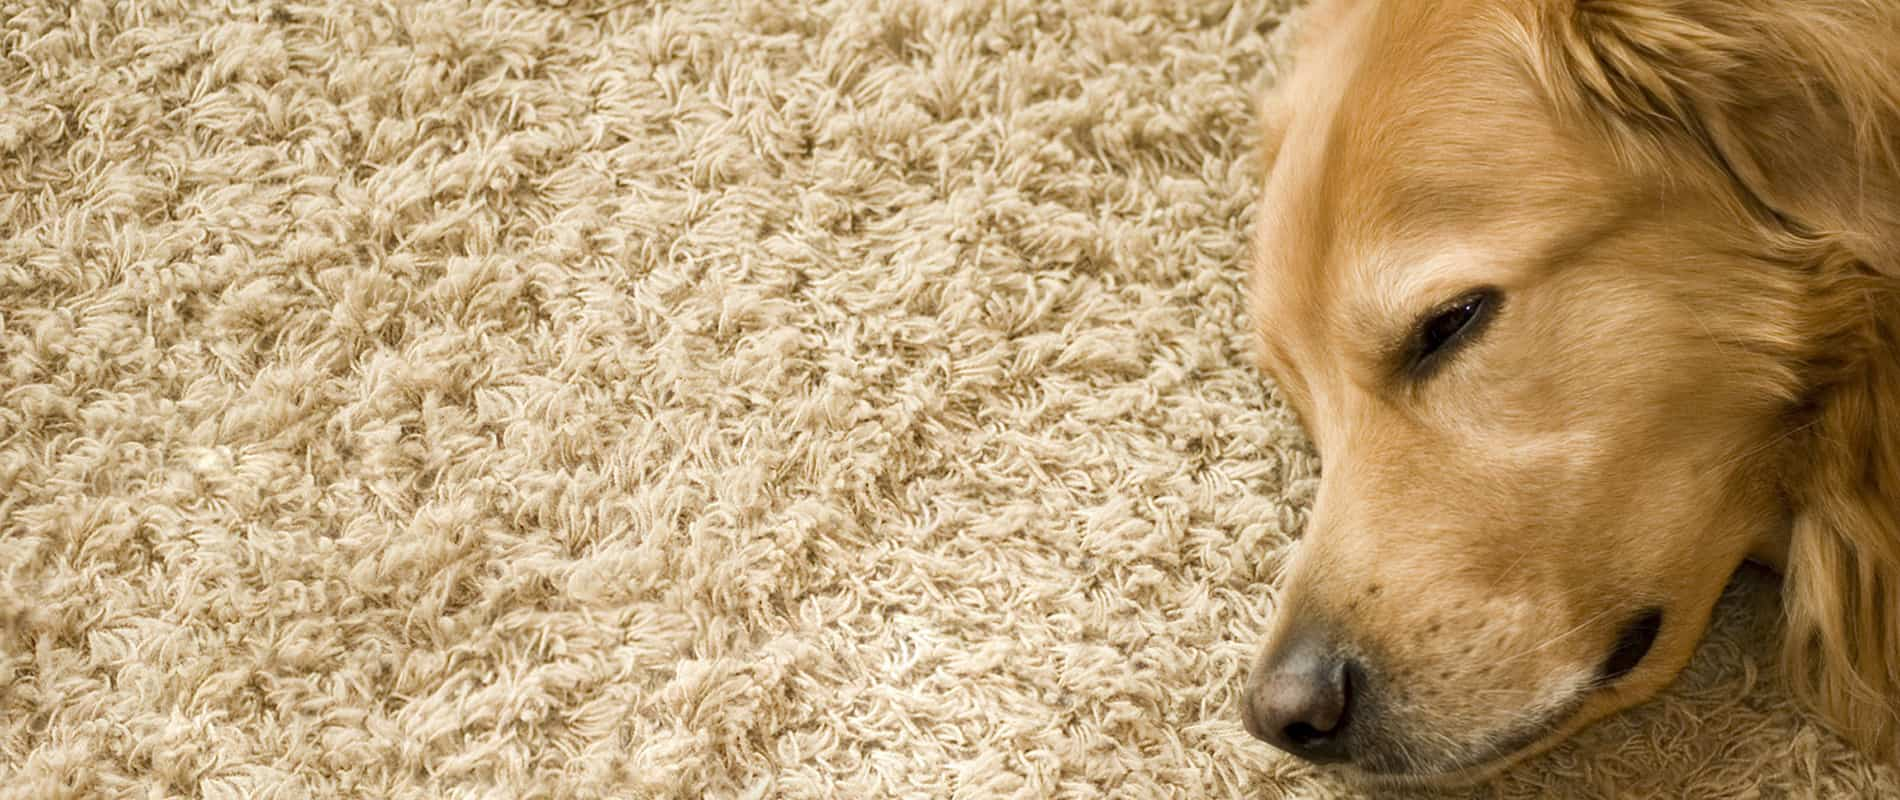 Pet Spot And Odor Removal